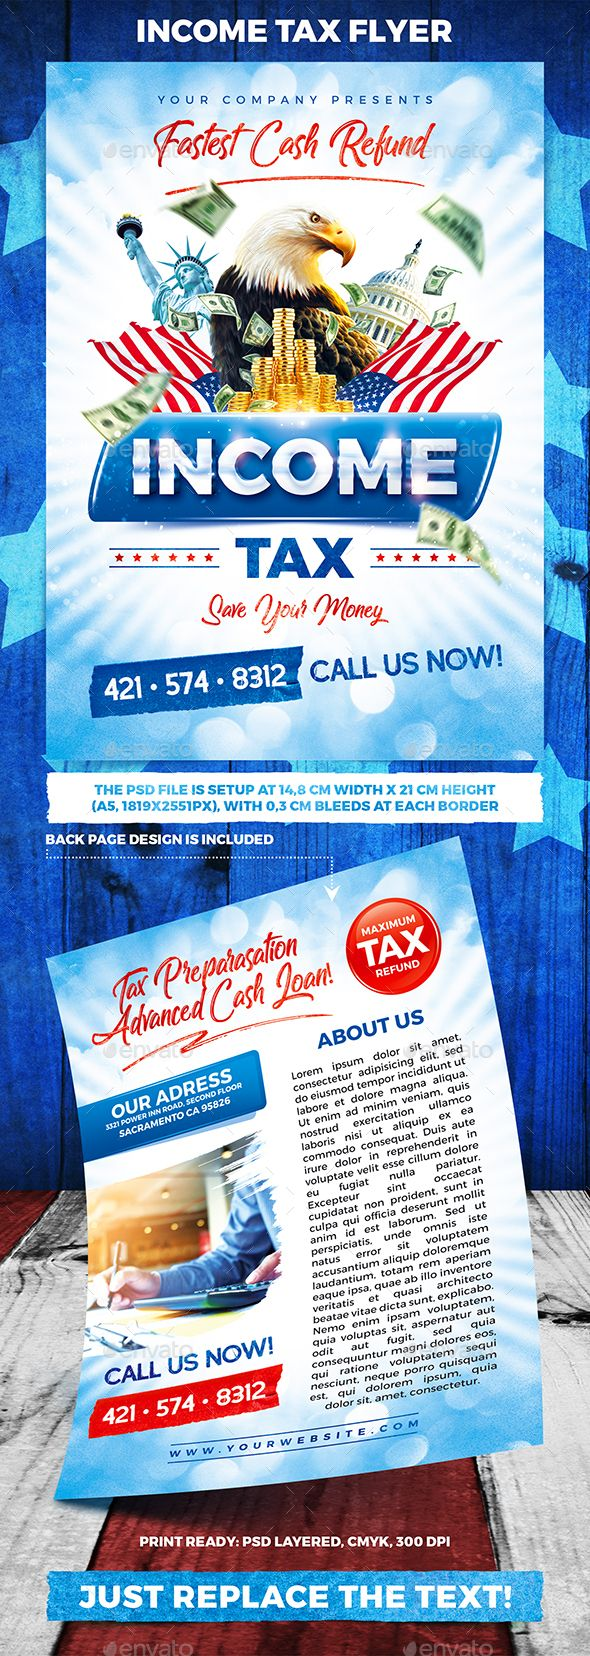 Income Tax Flyer | Flyer template, Flyer printing and Business flyers